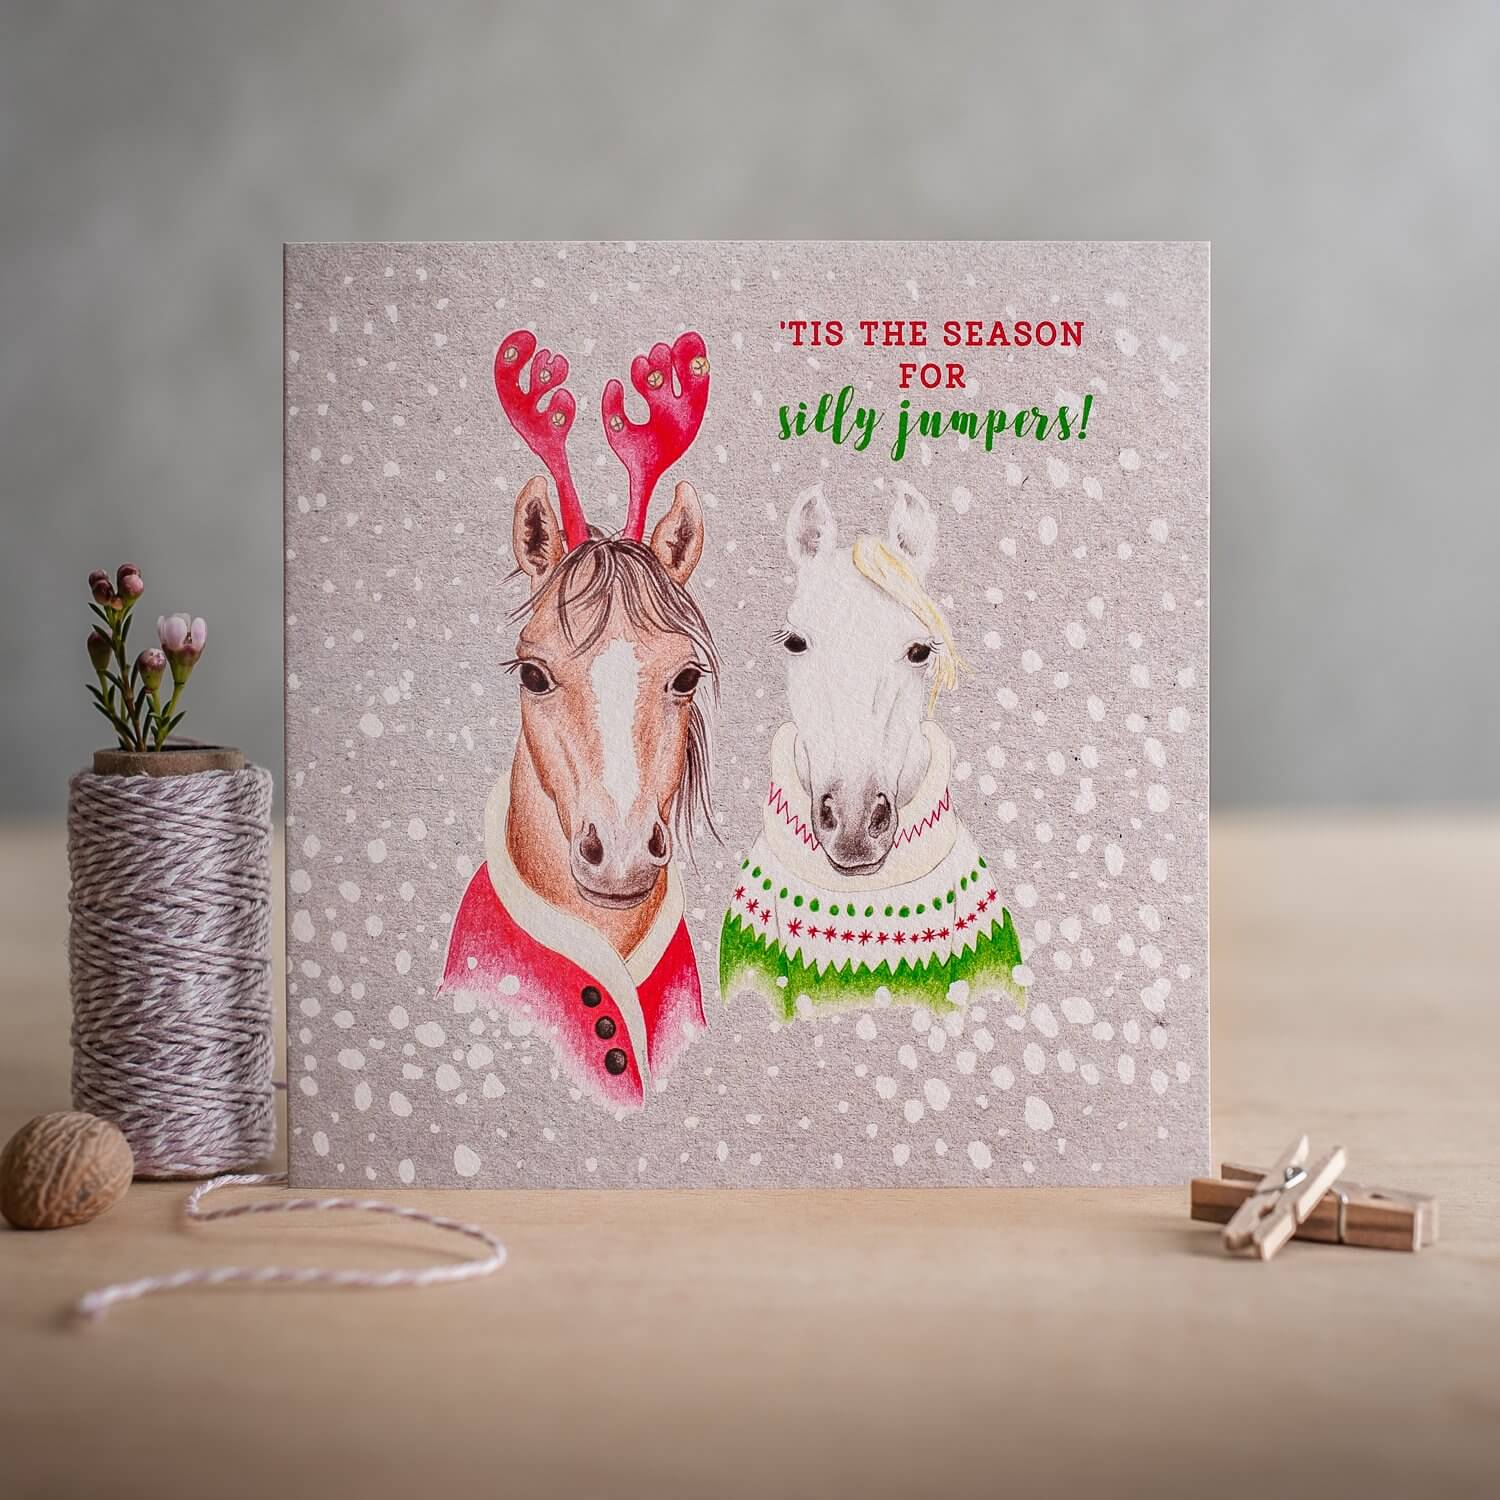 Deckled Edge Christmas Card - 'Tis The Season For Silly Jumpers'